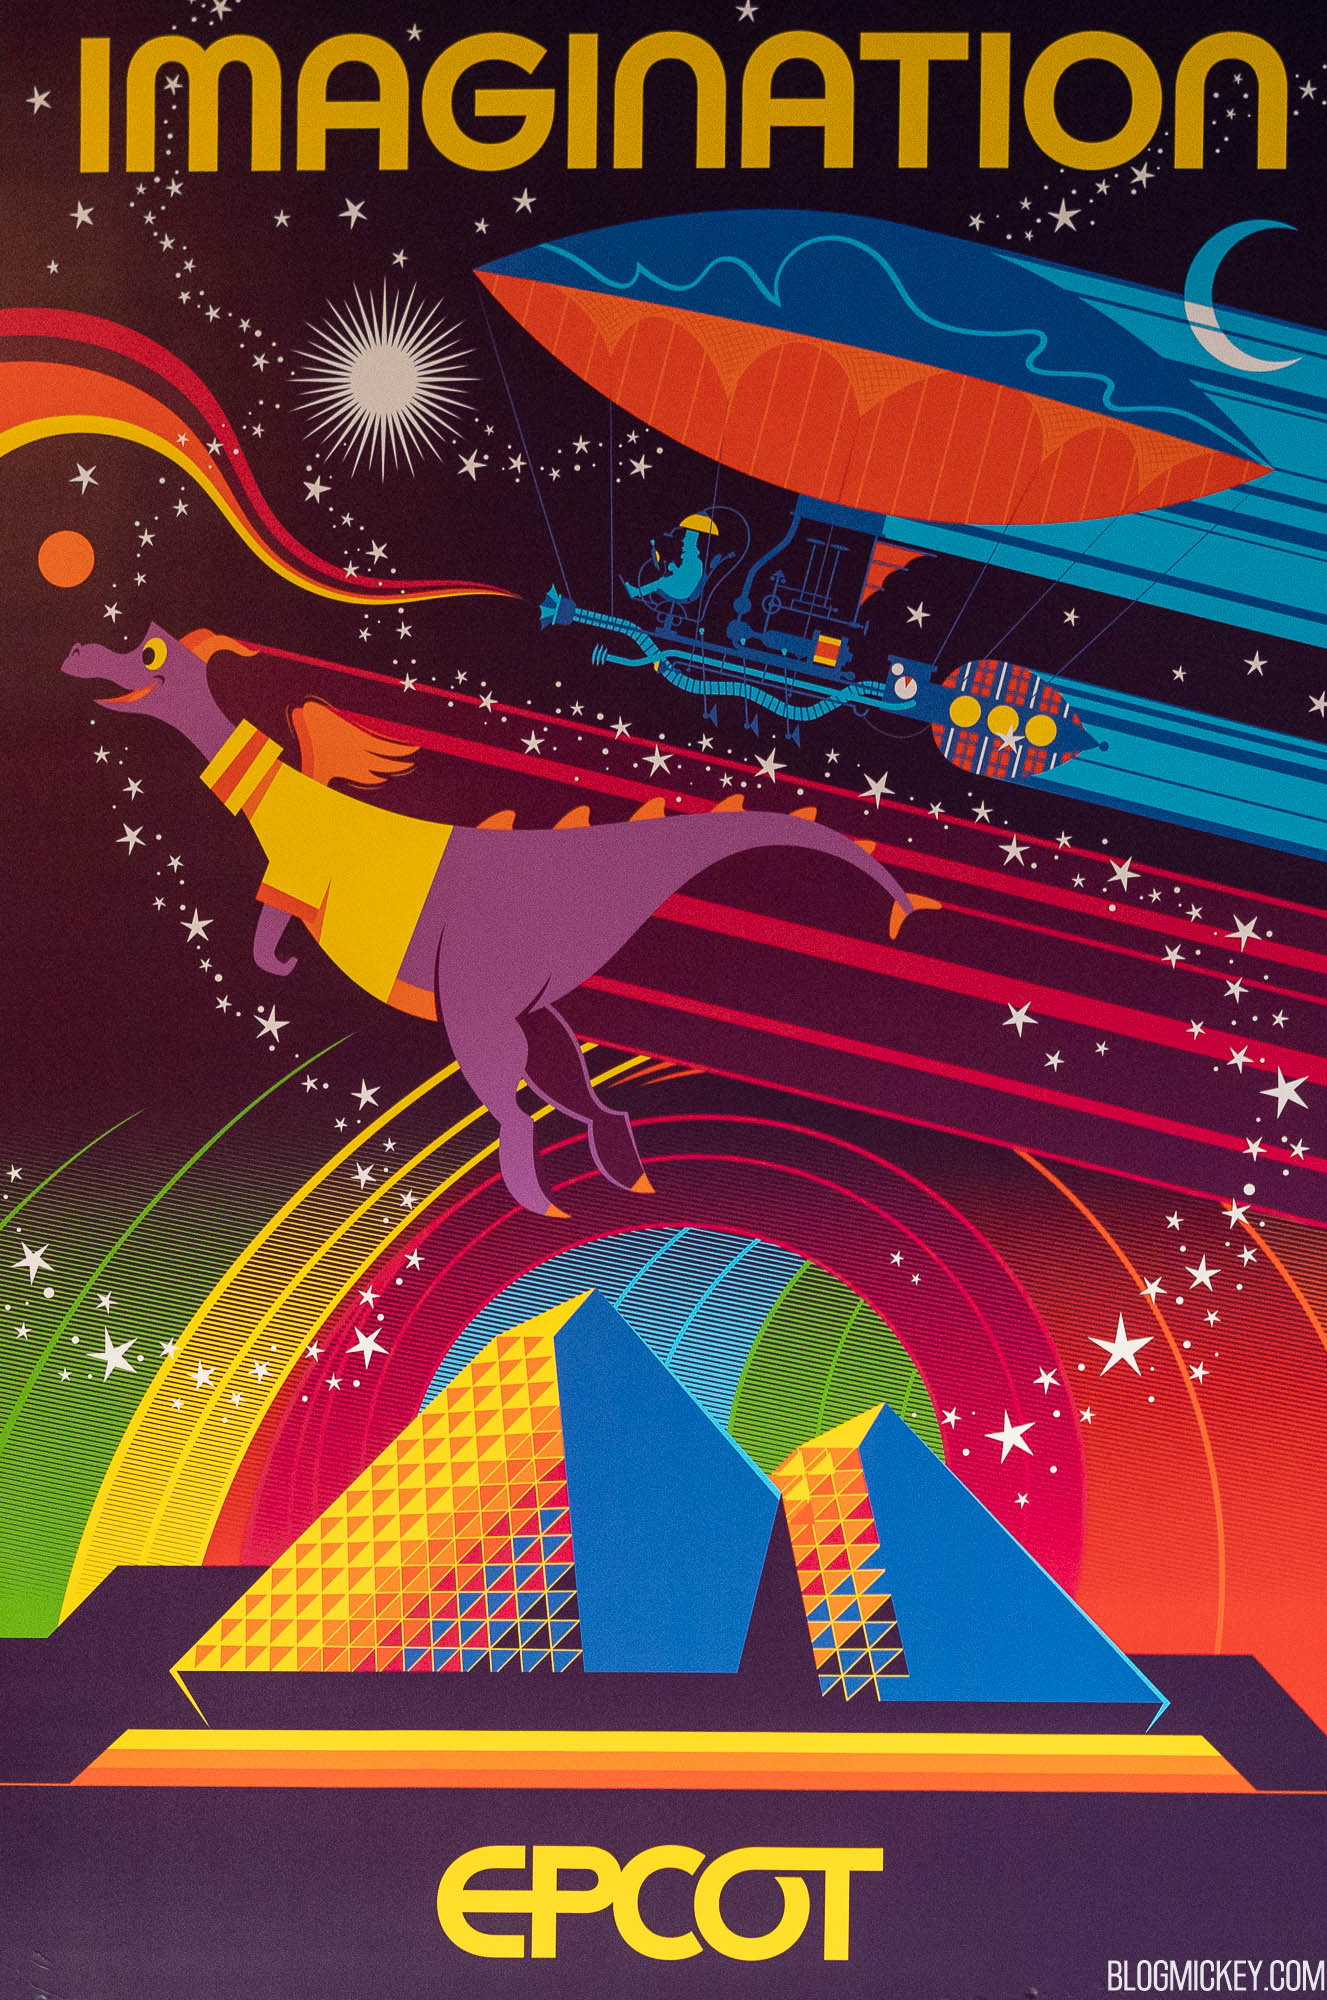 epcot-experience-attraction-poster-imagination-1.jpg